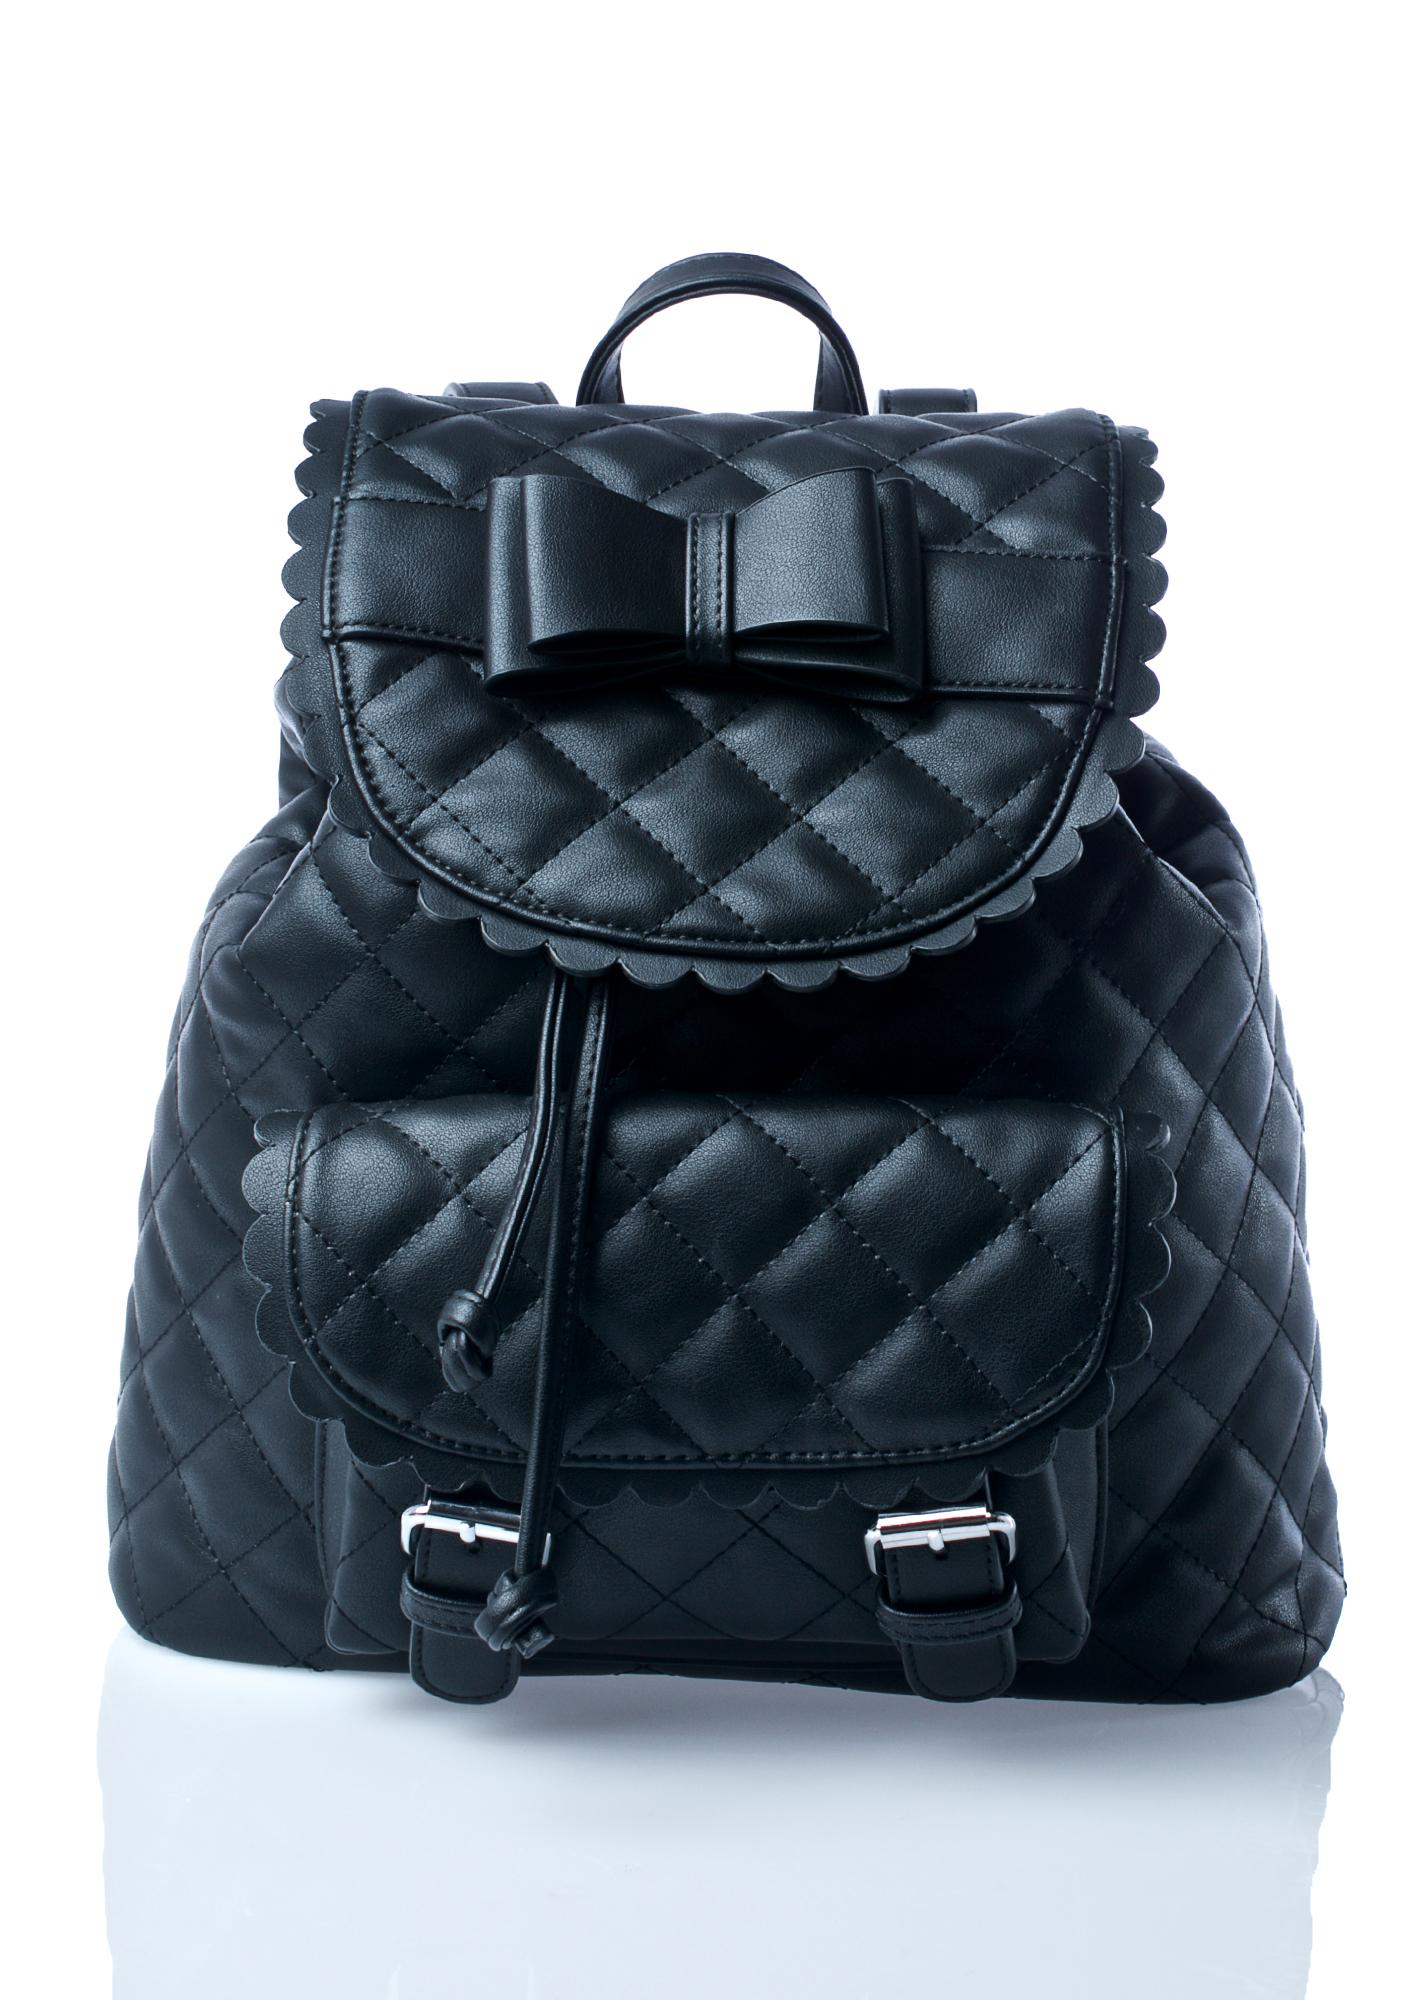 Sugarbaby Kawaii Noir Backpack